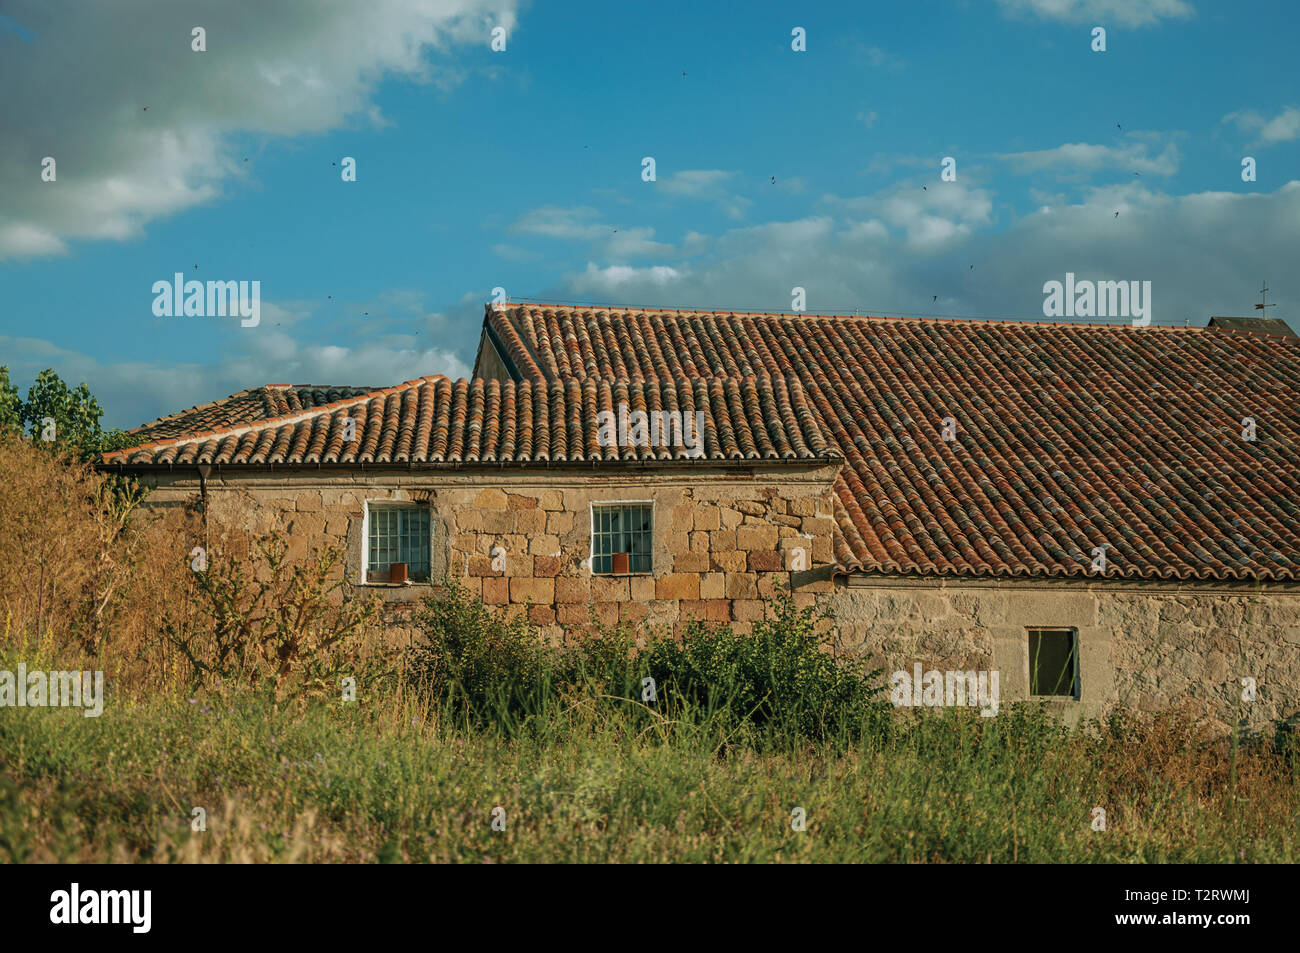 Stone Old House In Hilly Landscape With Green Undergrowth On Sunset At Avila With An Imposing Wall Around The Gothic City Center In Spain Stock Photo Alamy